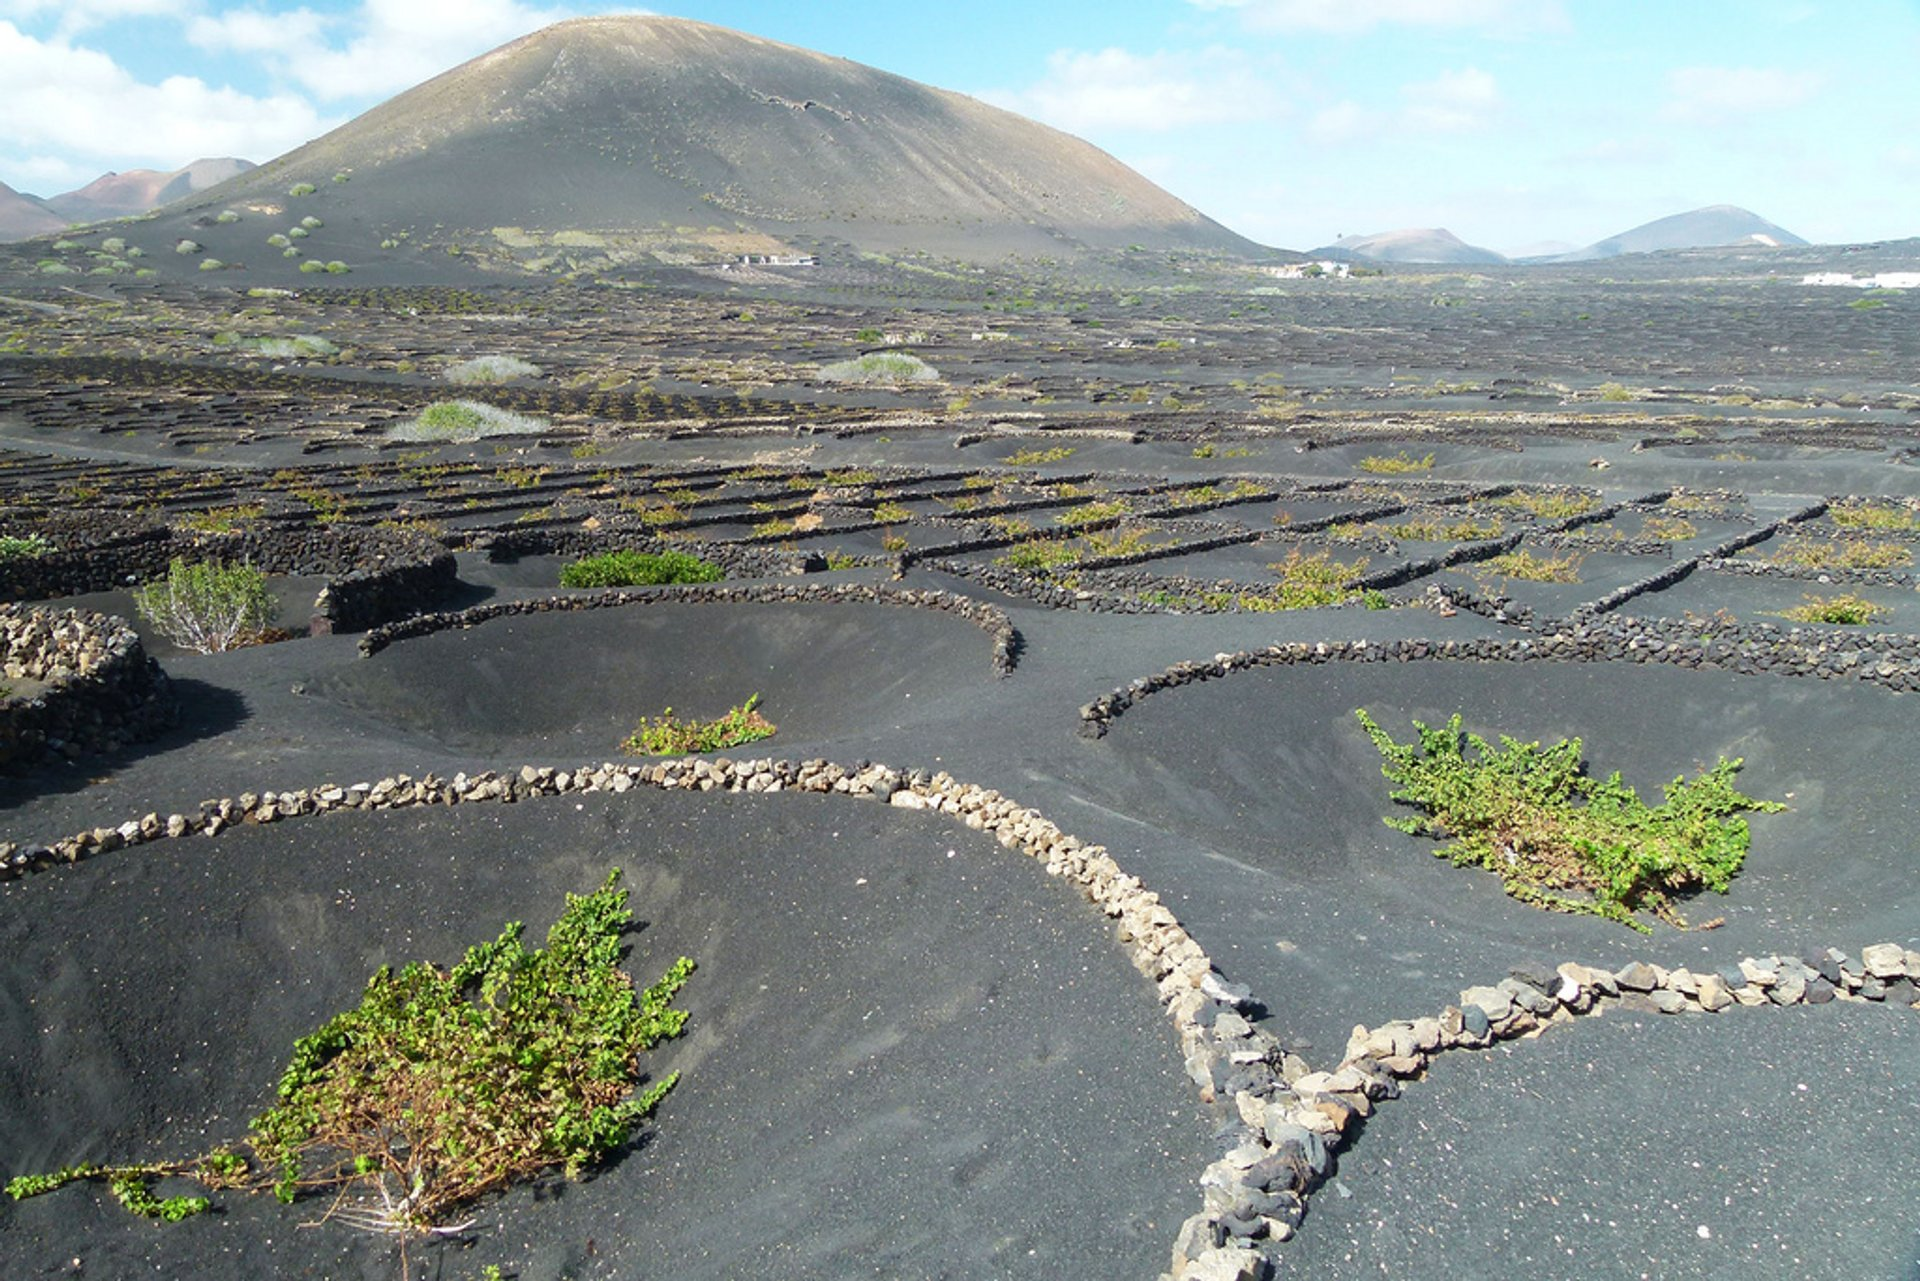 Lanzarote Volcanic Vineyards in Canary Islands 2020 - Best Time